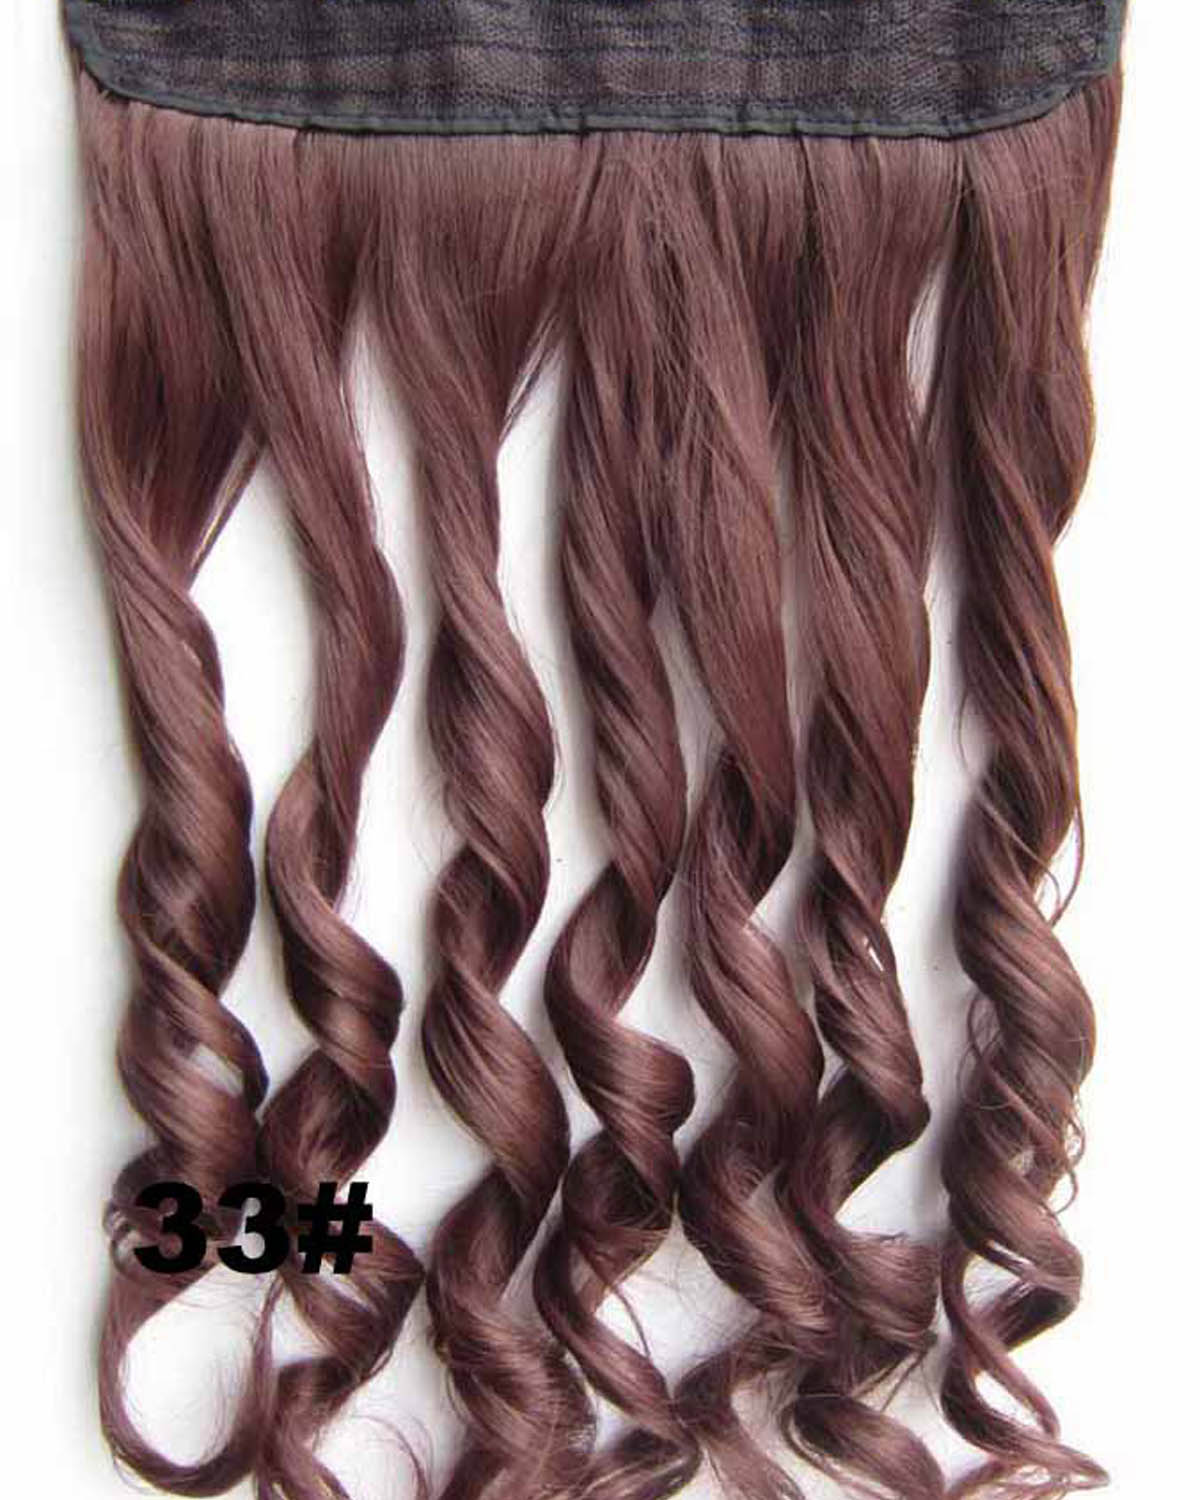 24 Inch Lady Exquisite Body Wave Curly Long One Piece 5 Clips Clip in Synthetic Hair Extension 33#